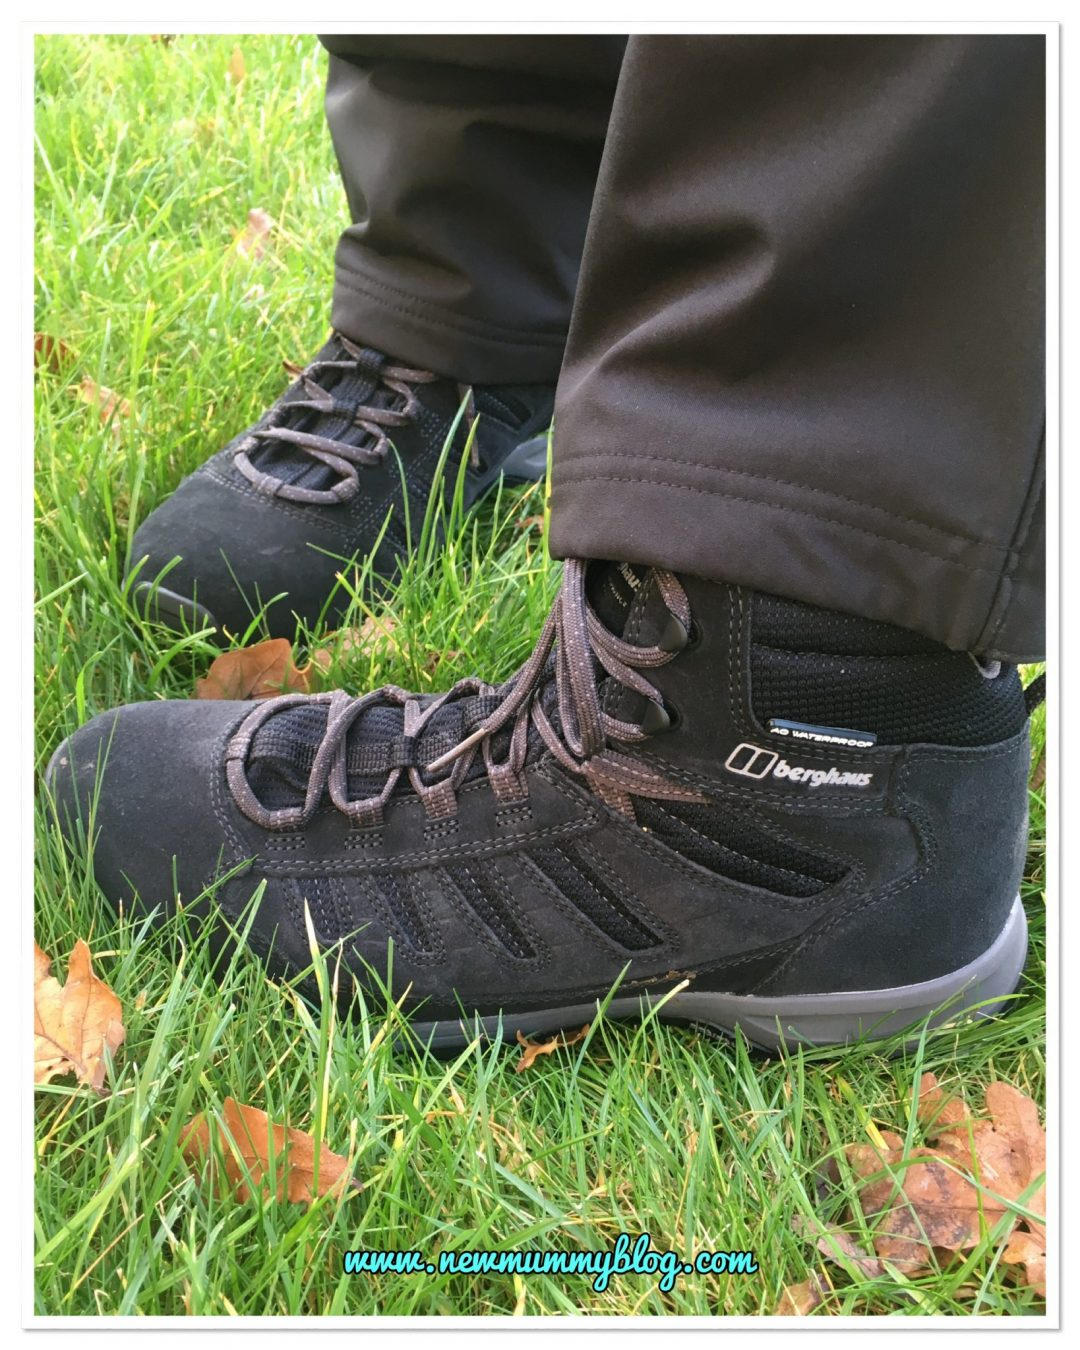 Men's outdoor wear from Blacks - Berghaus men's walking boots review comfy and supportive